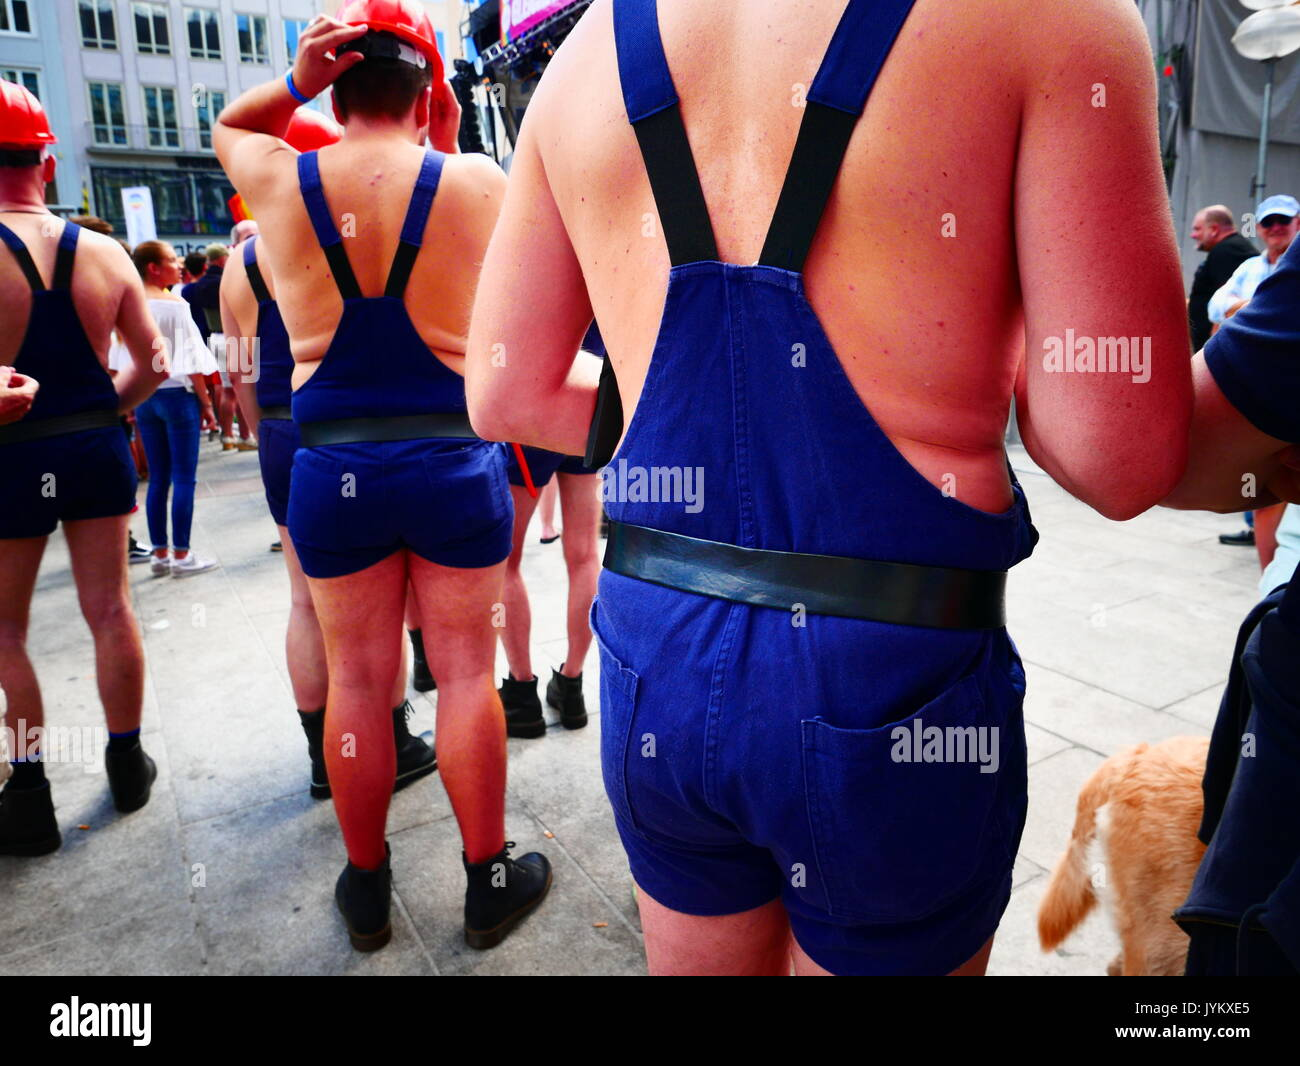 Germany German Munich CSD Christopher's Street Day Marriage for All party concert celebration - Stock Image